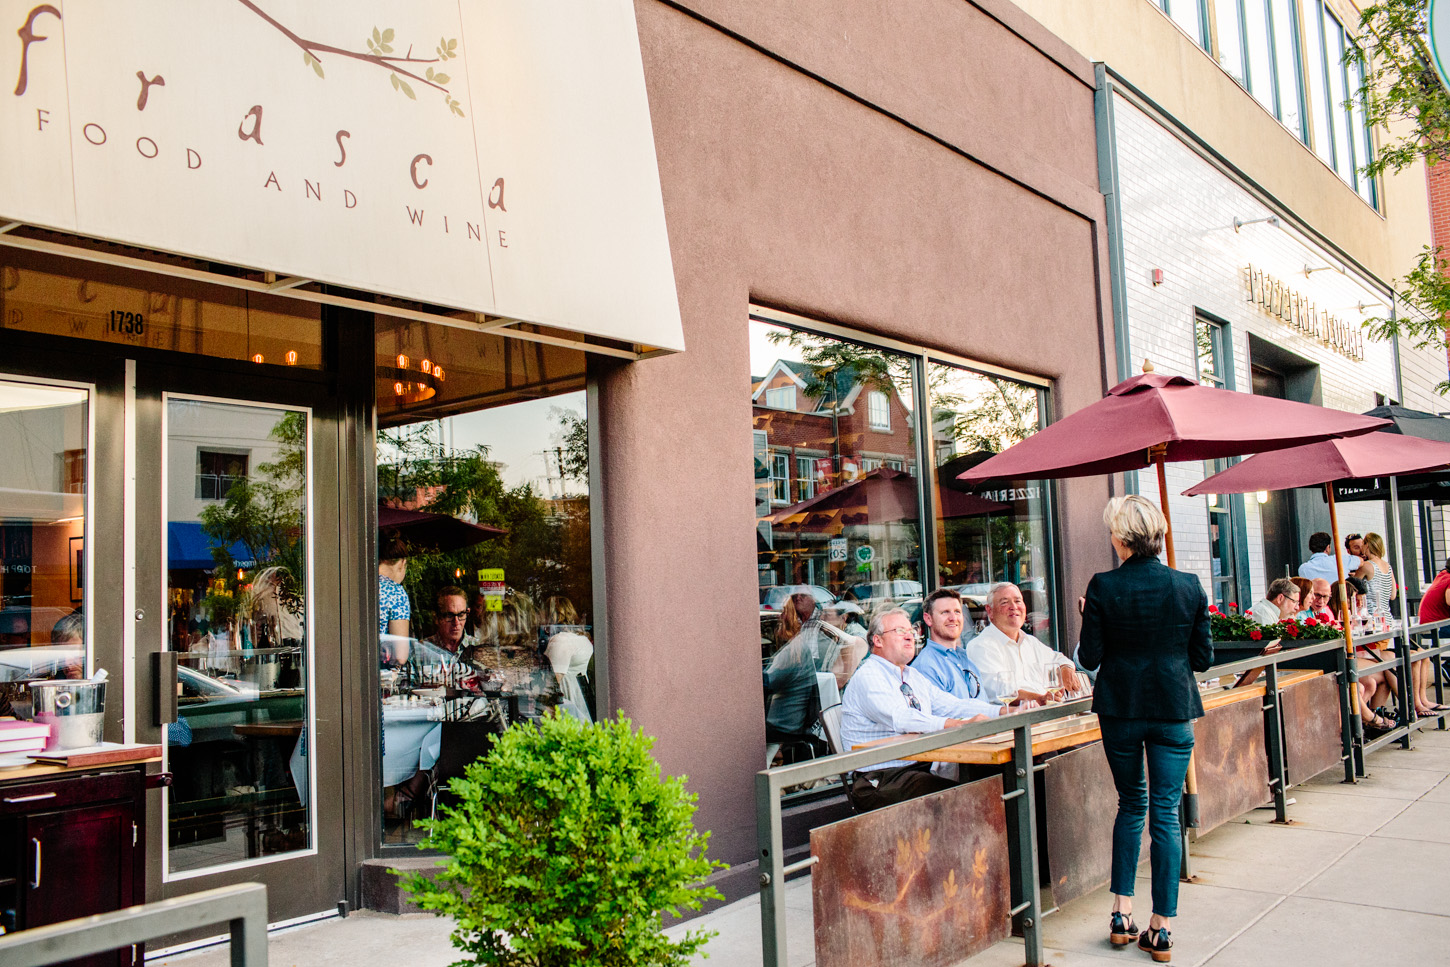 Frasca Food & Wine from the street